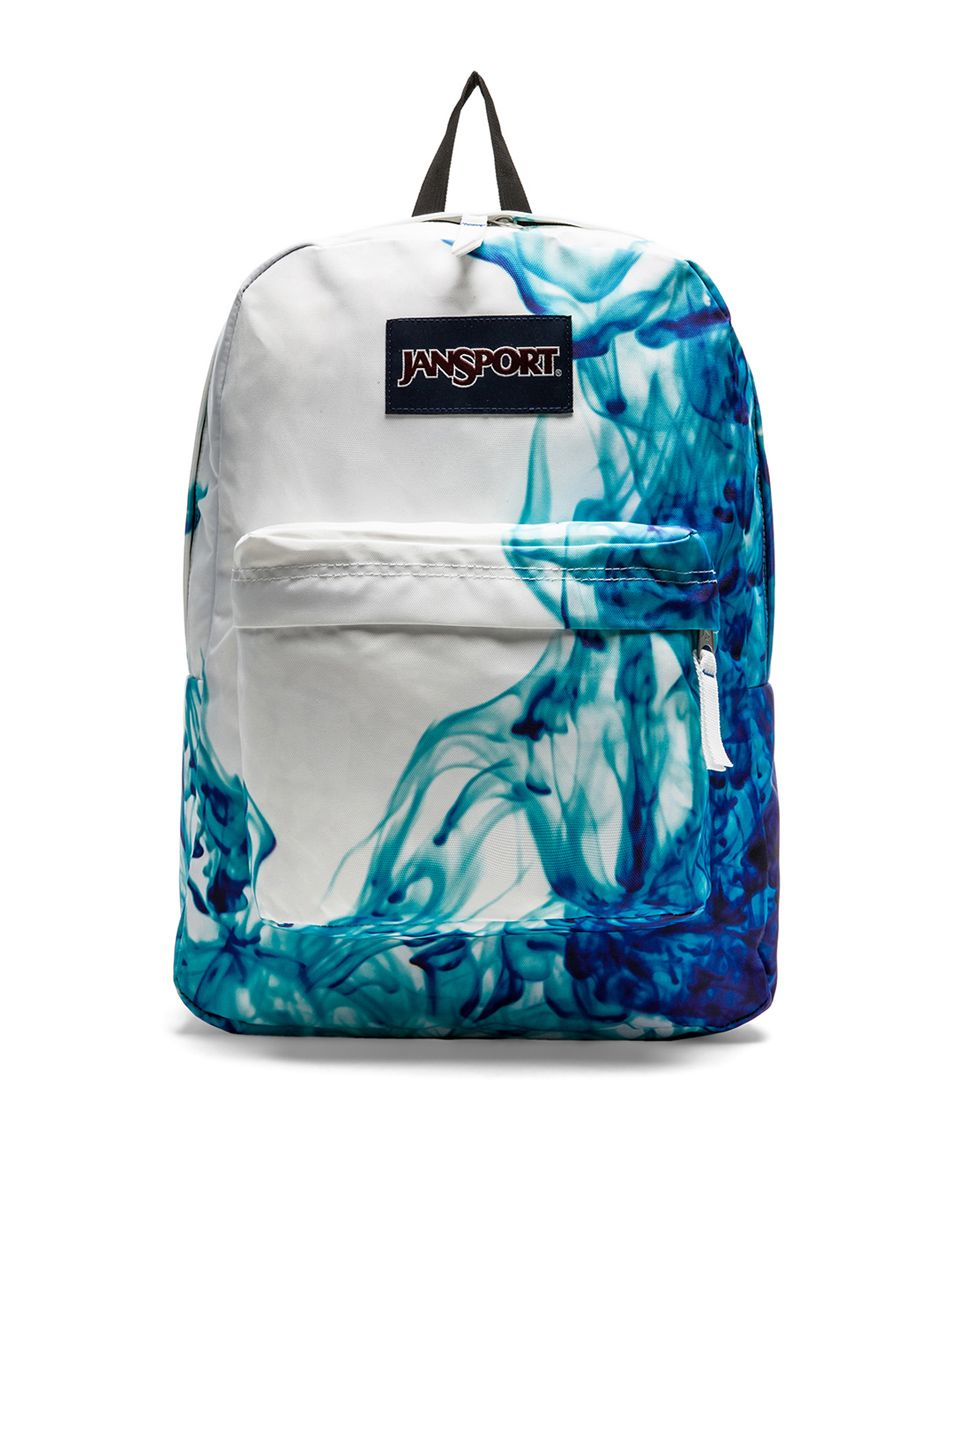 6bbd27e01c5 Jansport Superbreak Backpack in Blue Drip Dye